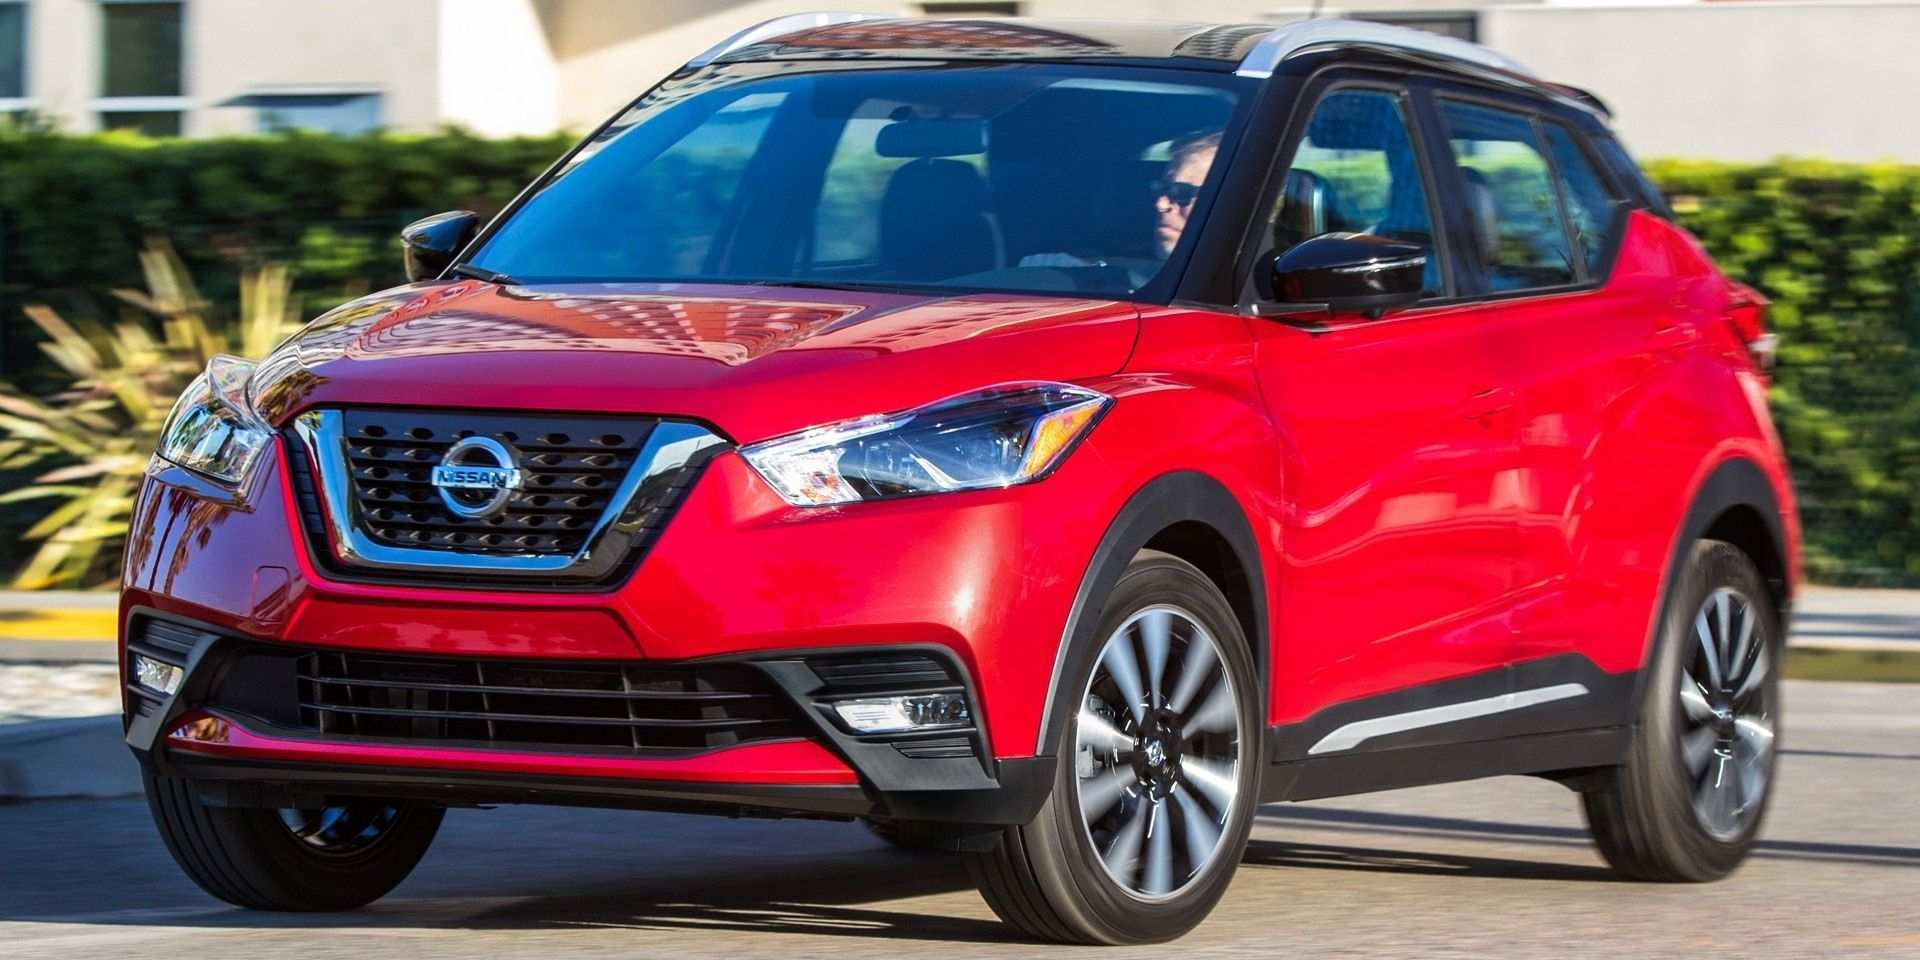 80 All New Best Nissan 2019 Crossover Release Date And Specs Images by Best Nissan 2019 Crossover Release Date And Specs